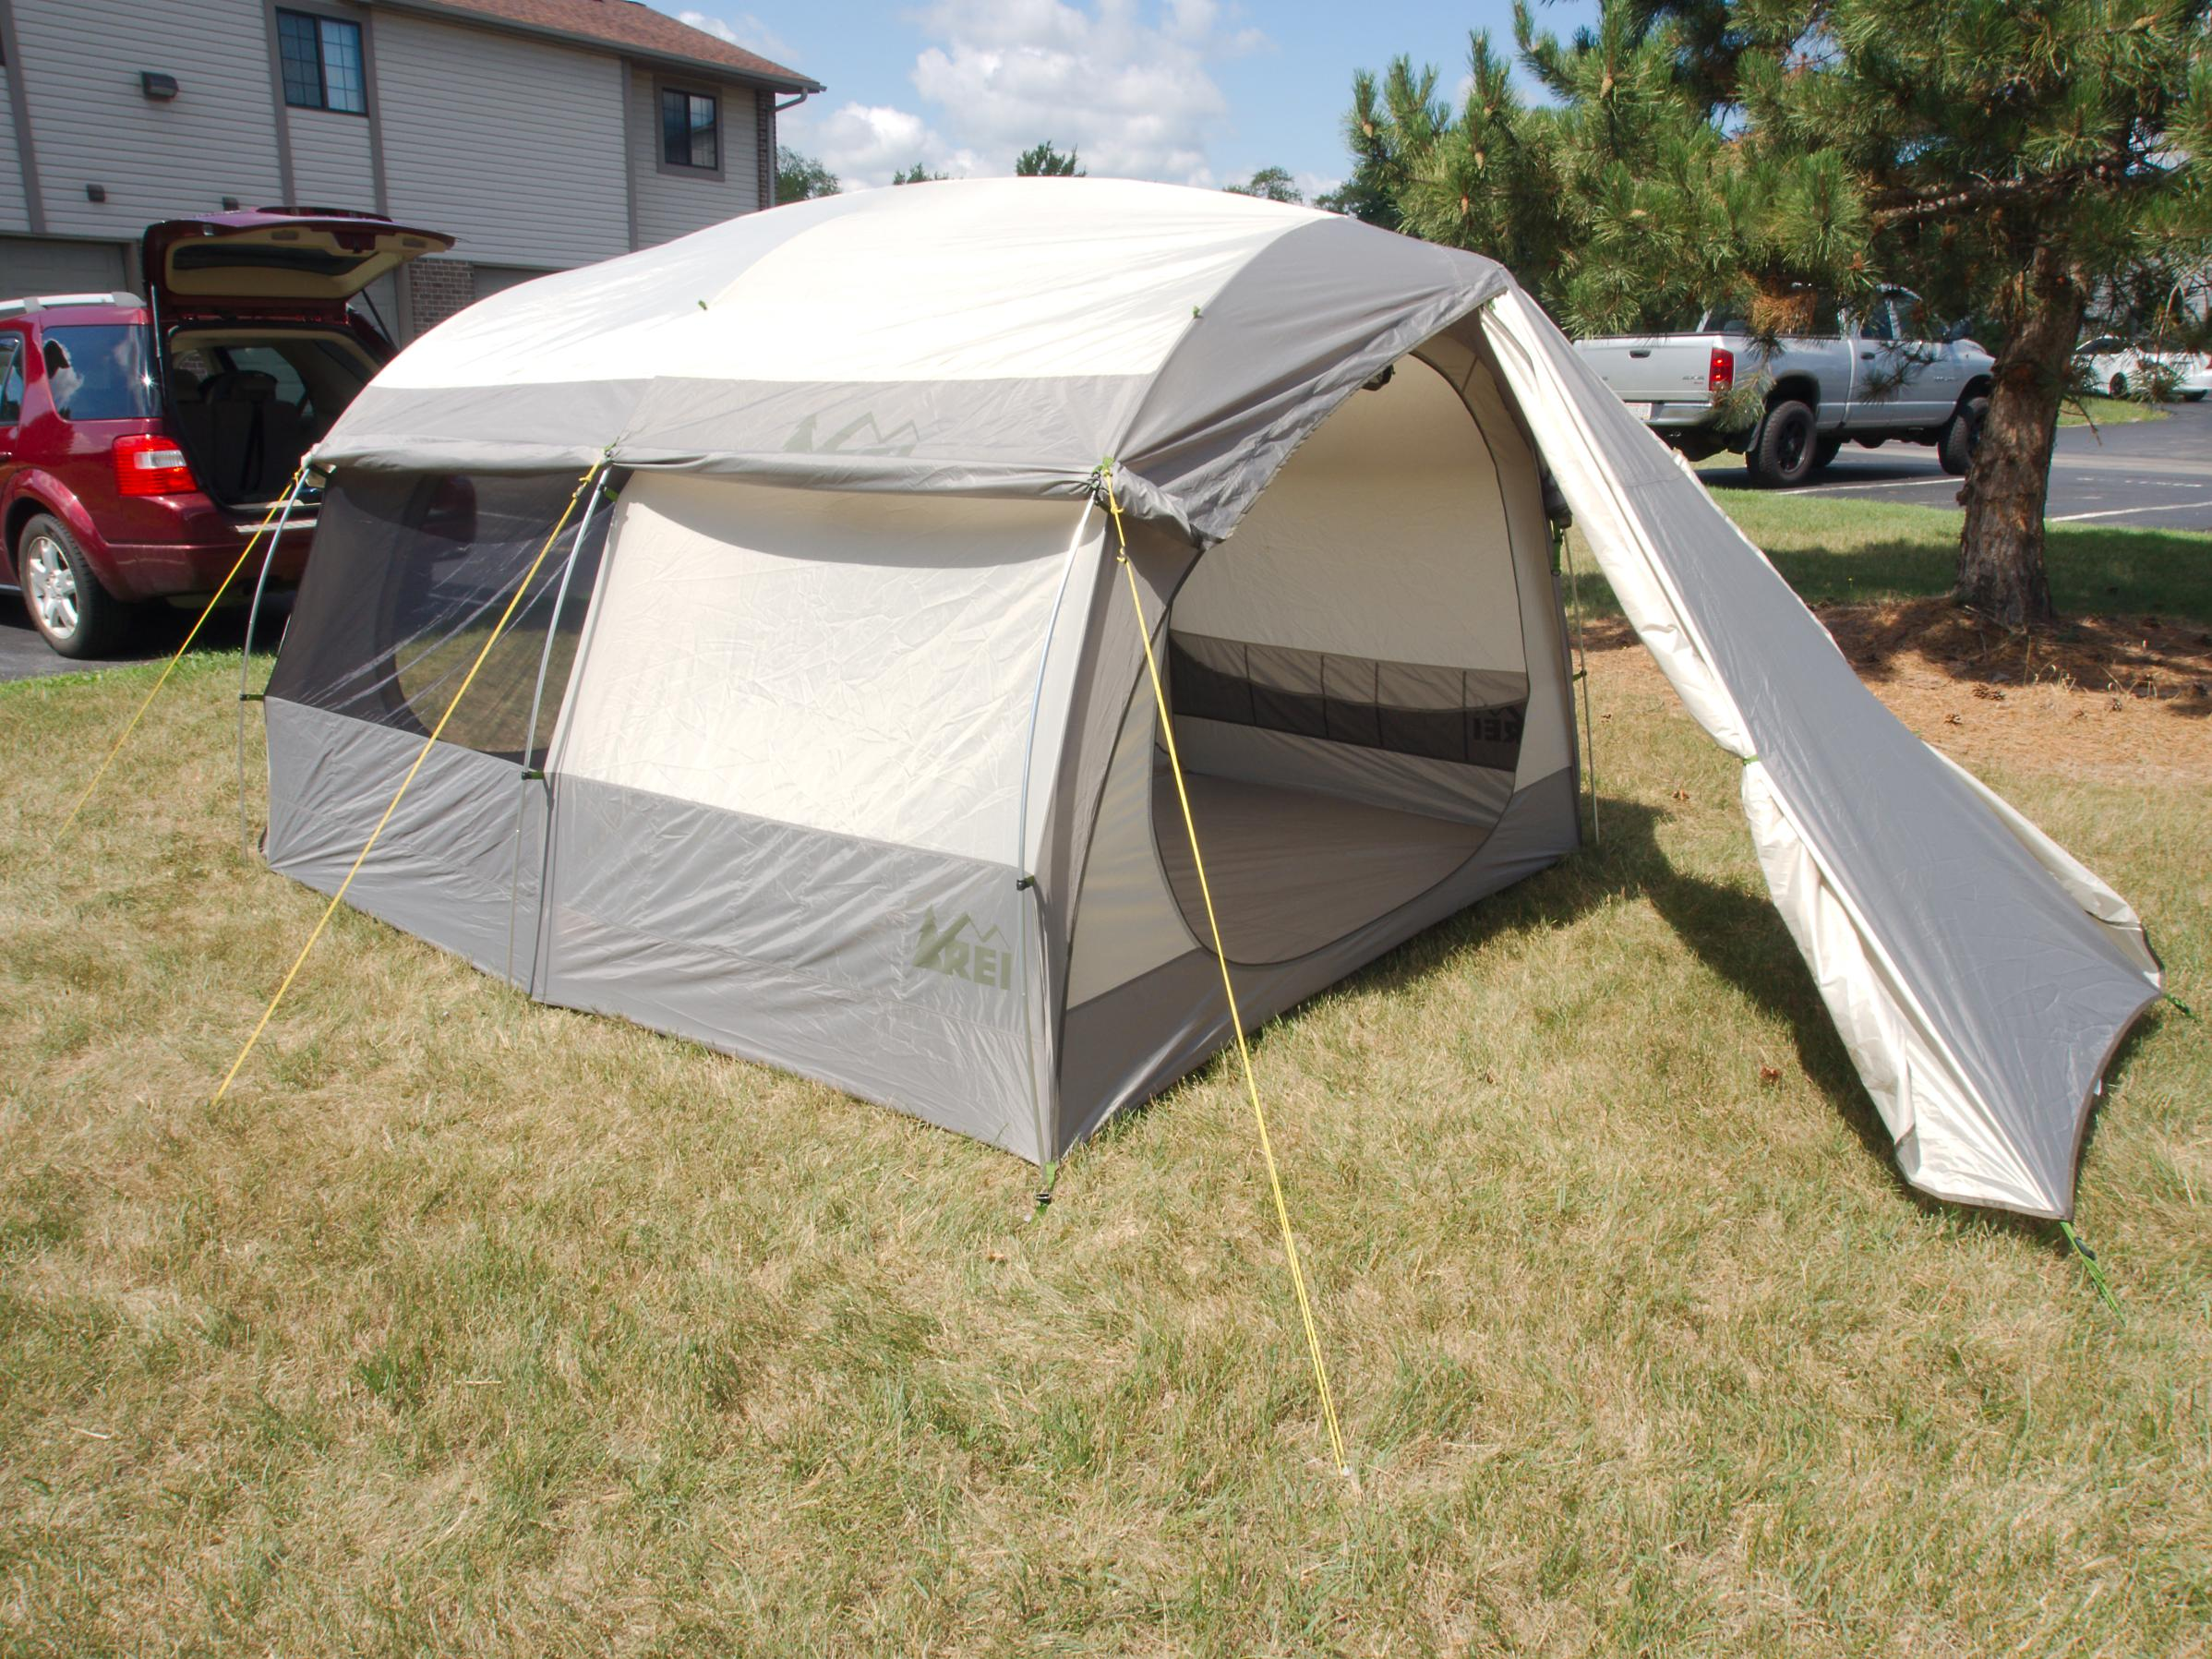 Purchased last Aug. at REI Garrage Sale (tiny burn hole inside side wall) used one time so far. A KingDome 8 is also available. It will replace my BA ... & BWCA Car camping tent... rei kingdom what ya think? Boundary ...